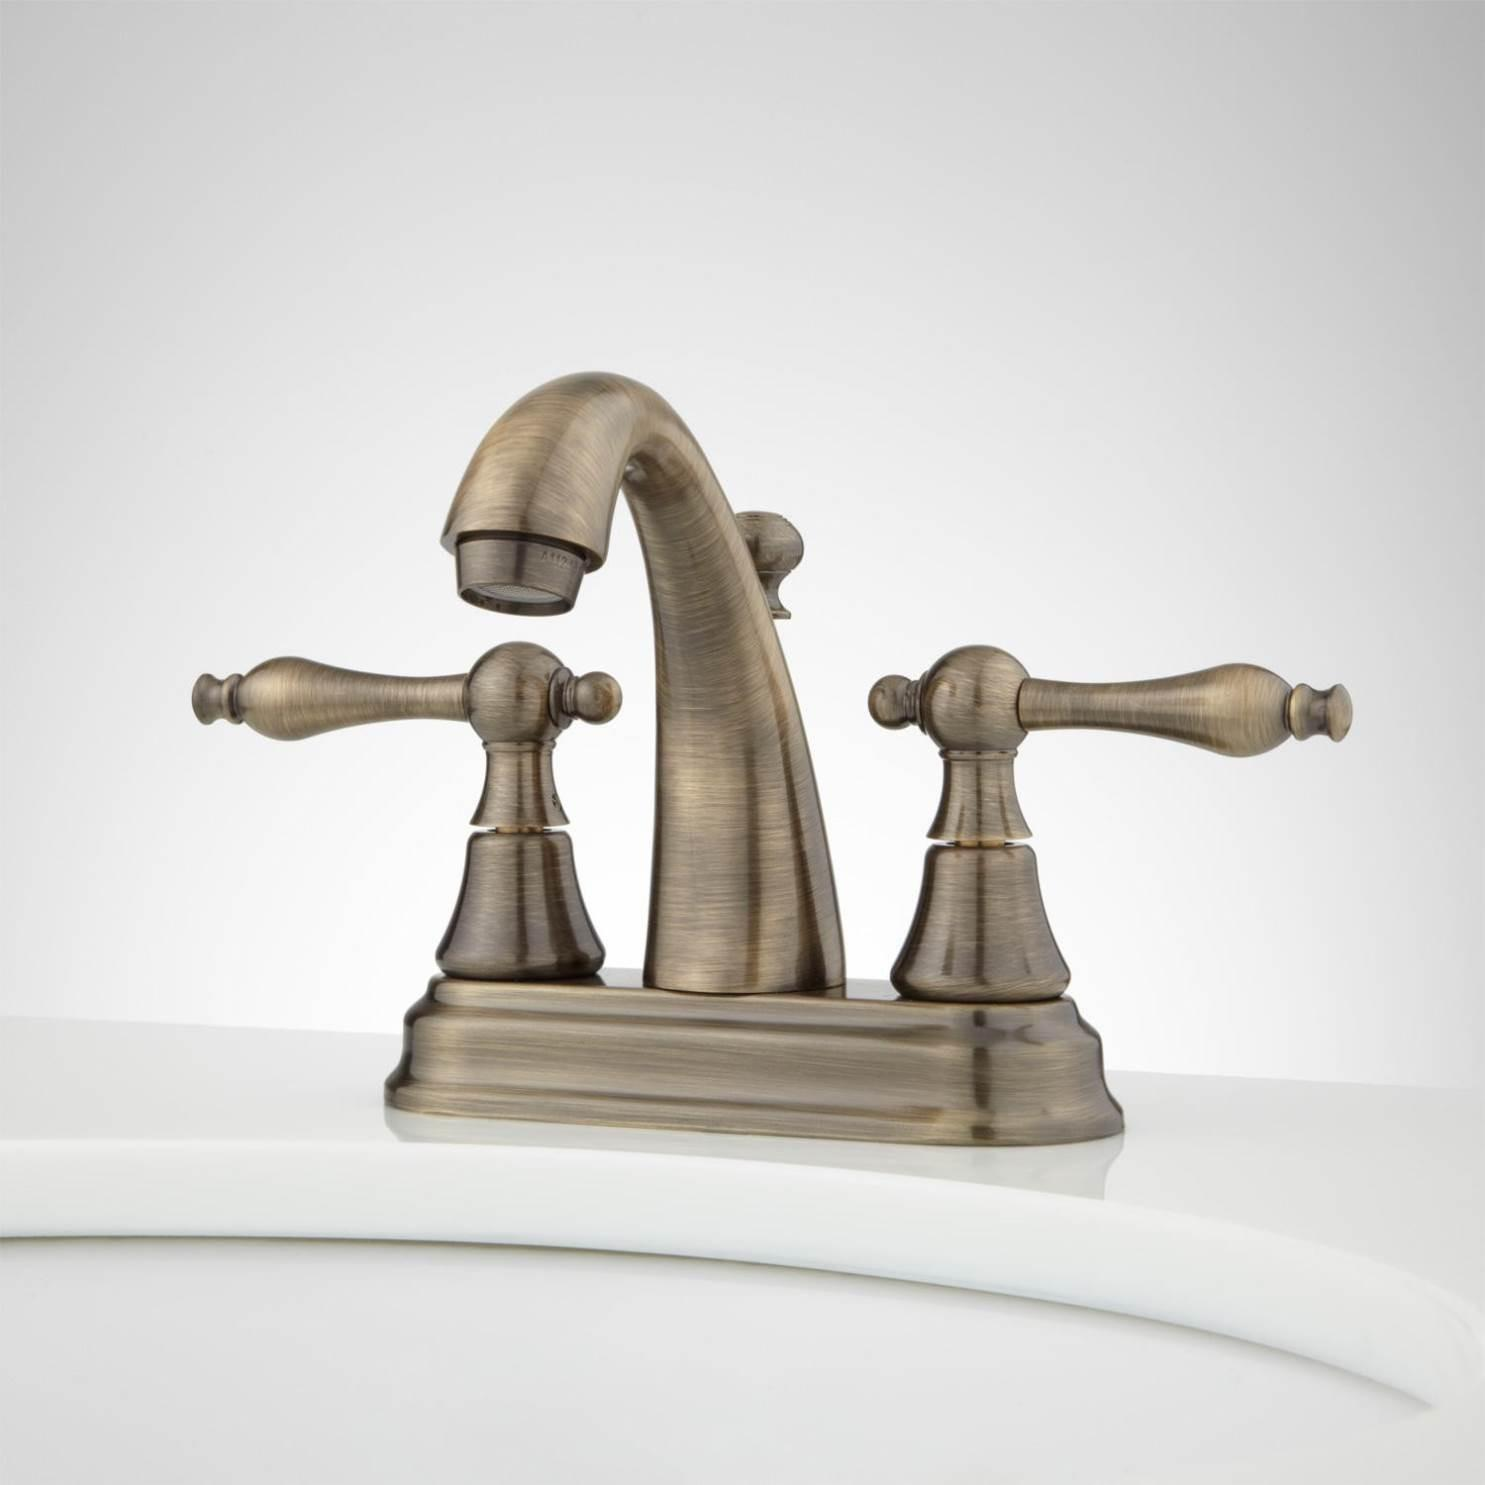 Lovely Antique Brass Bathroom Faucets